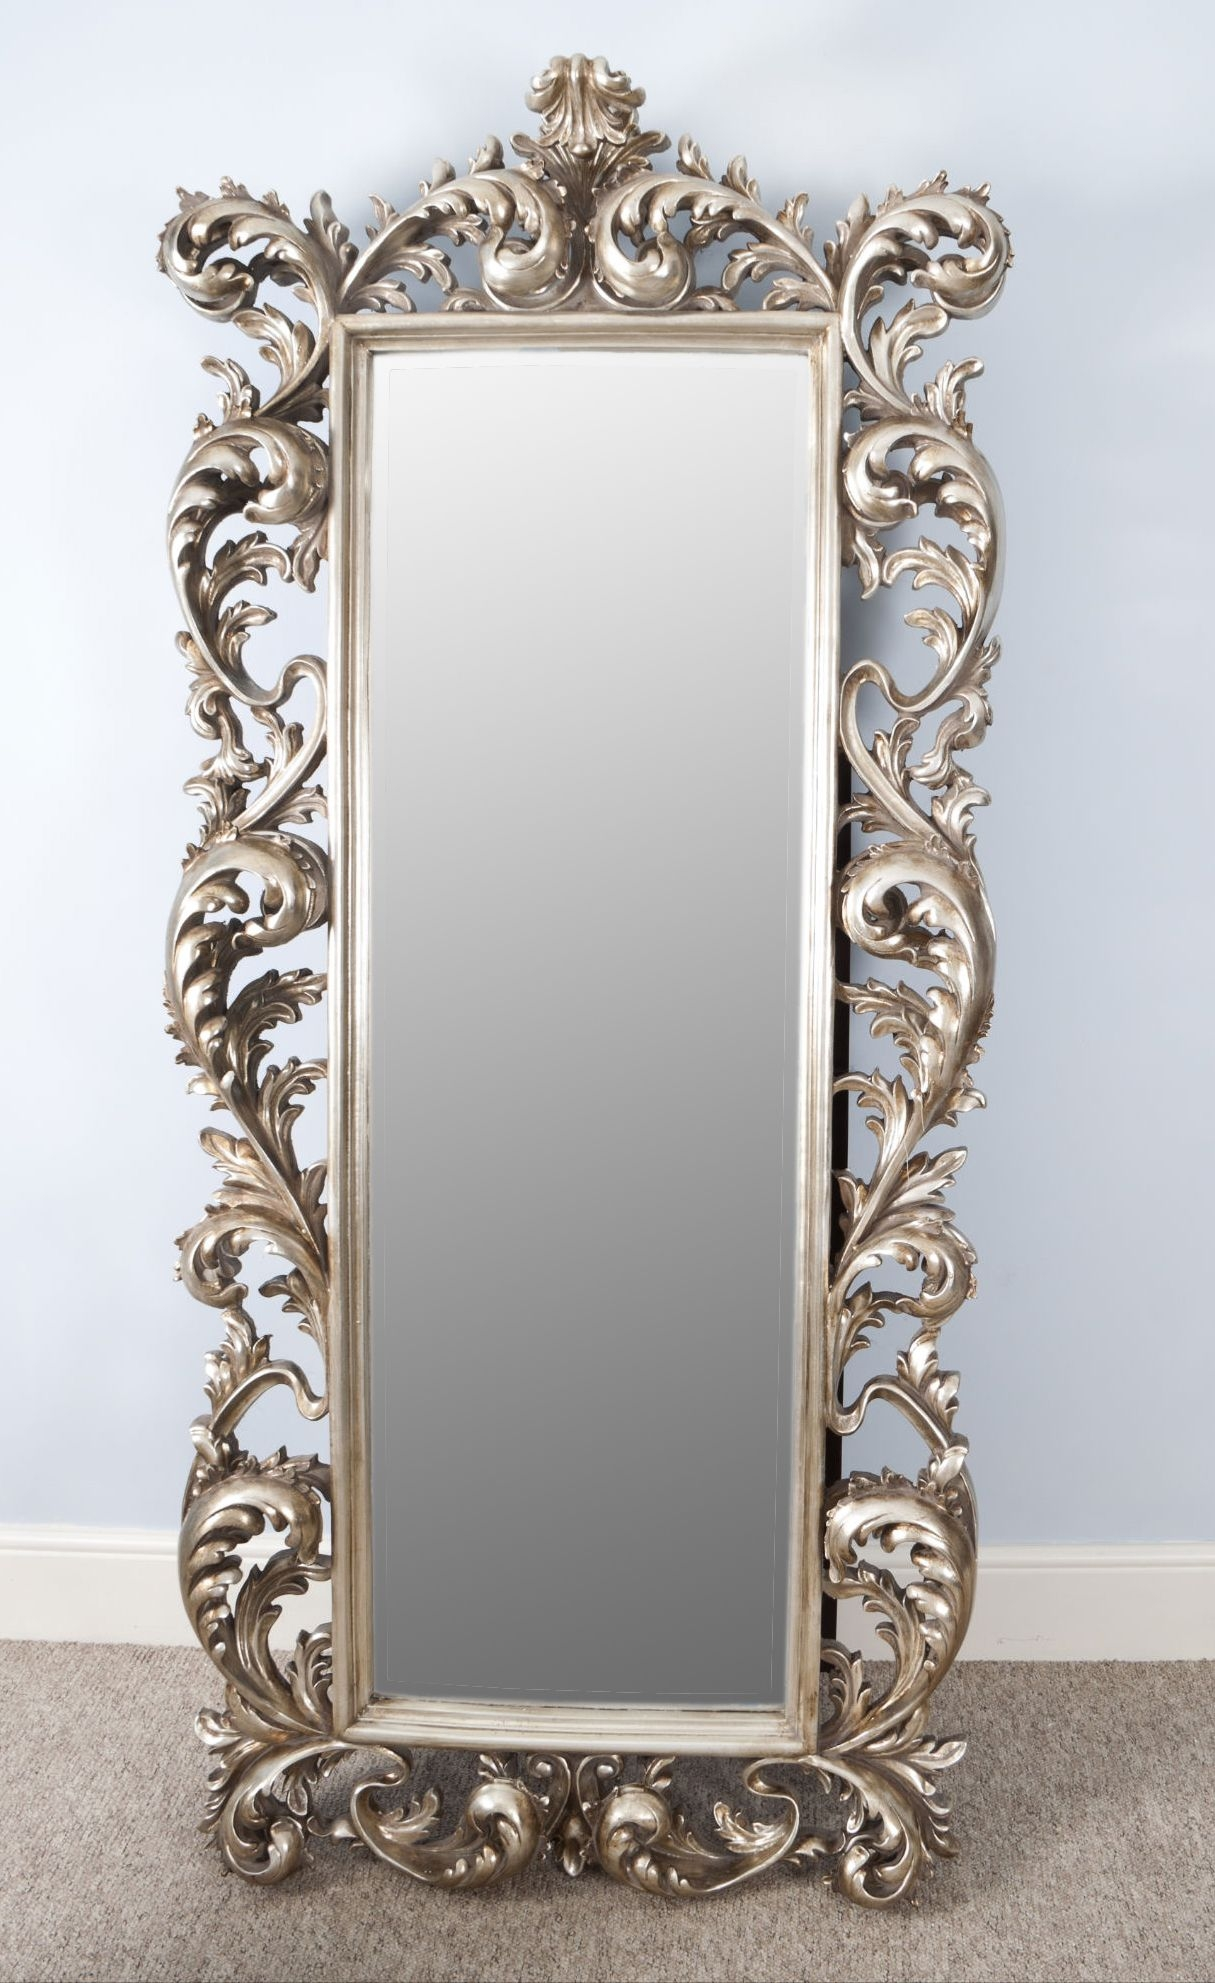 Wondrous Old Oval Mirror Antique Cheval Wall Mirror Likewise Grey Throughout Old Fashioned Mirrors For Sale (Image 15 of 15)